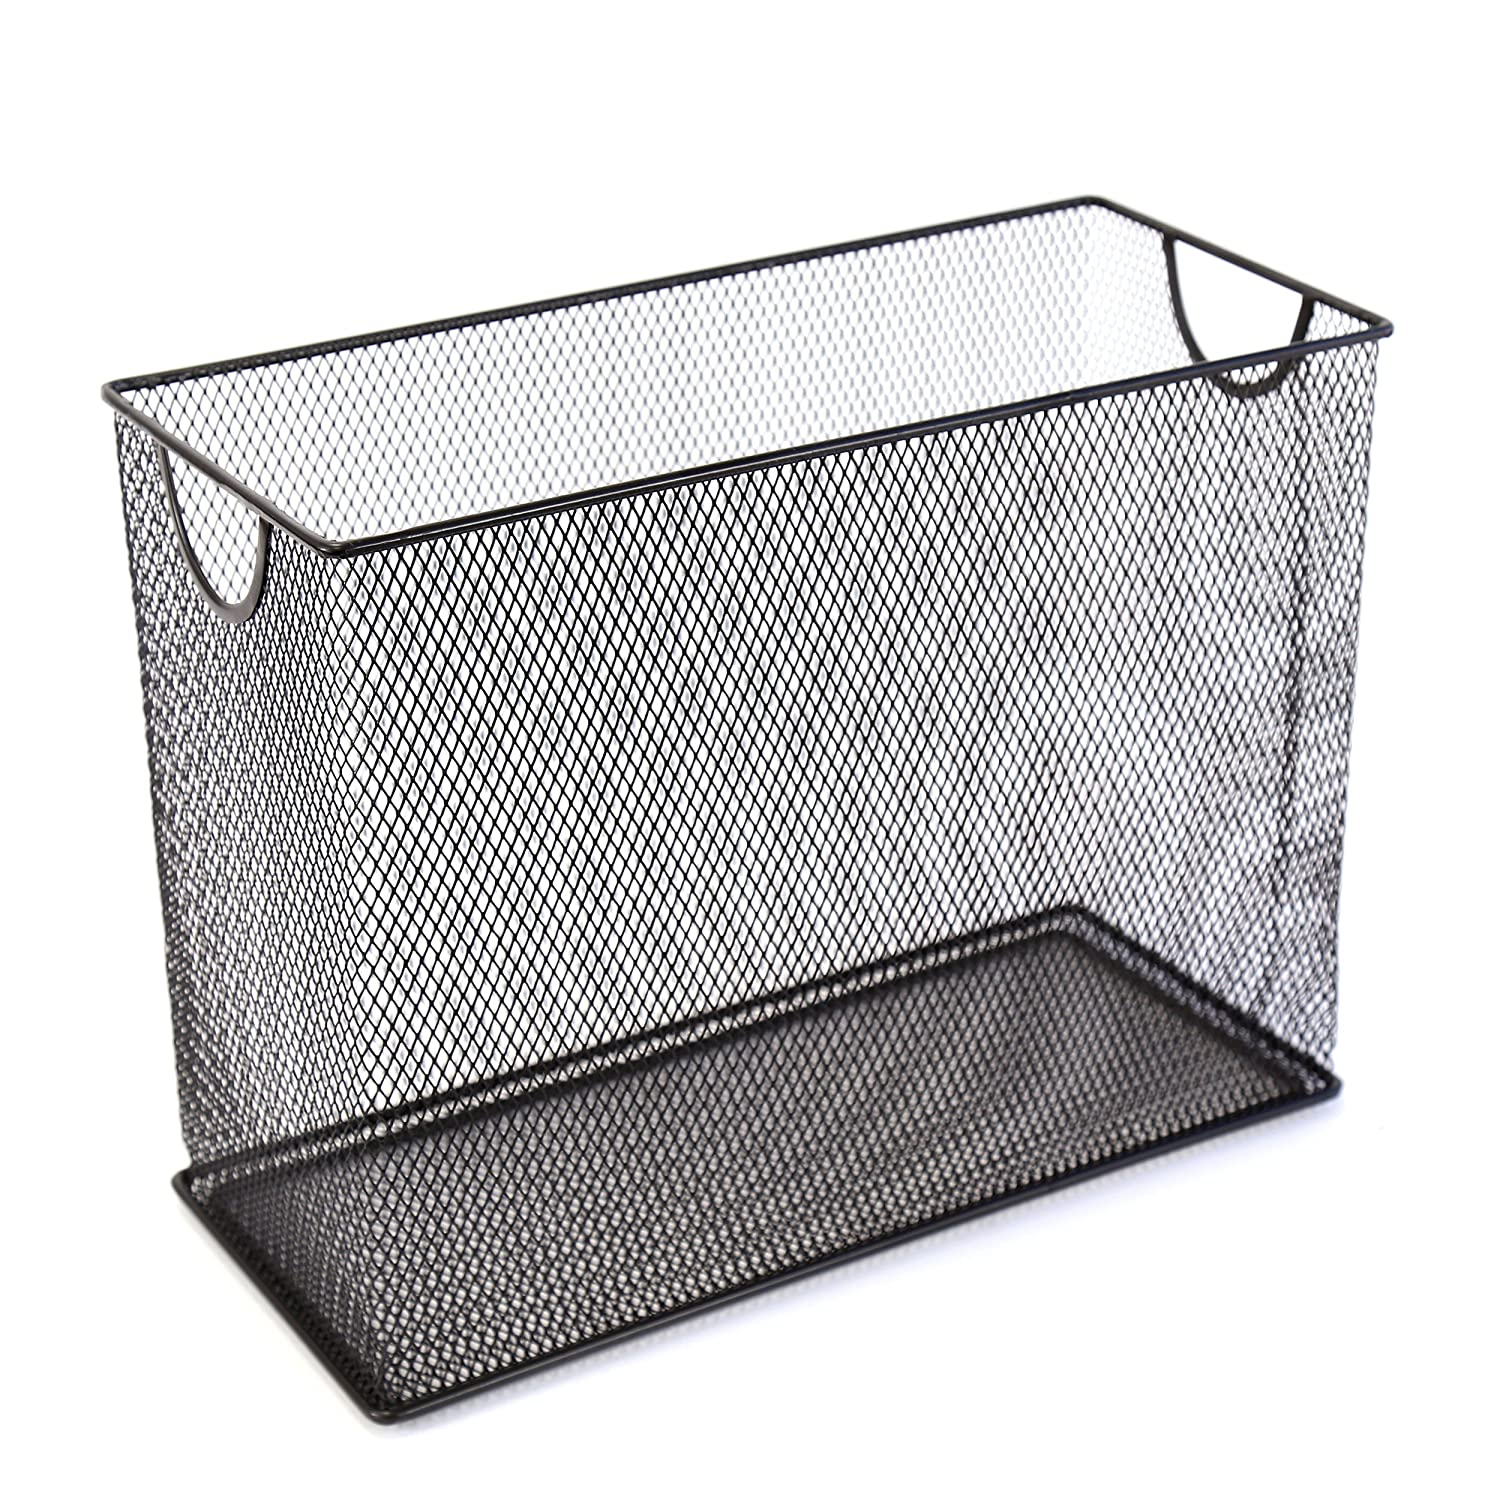 "U Brands Mesh Steel Desktop Hanging File Holder, Letter Size, 12.4"" x 9.53"" x 5.5"", Black"